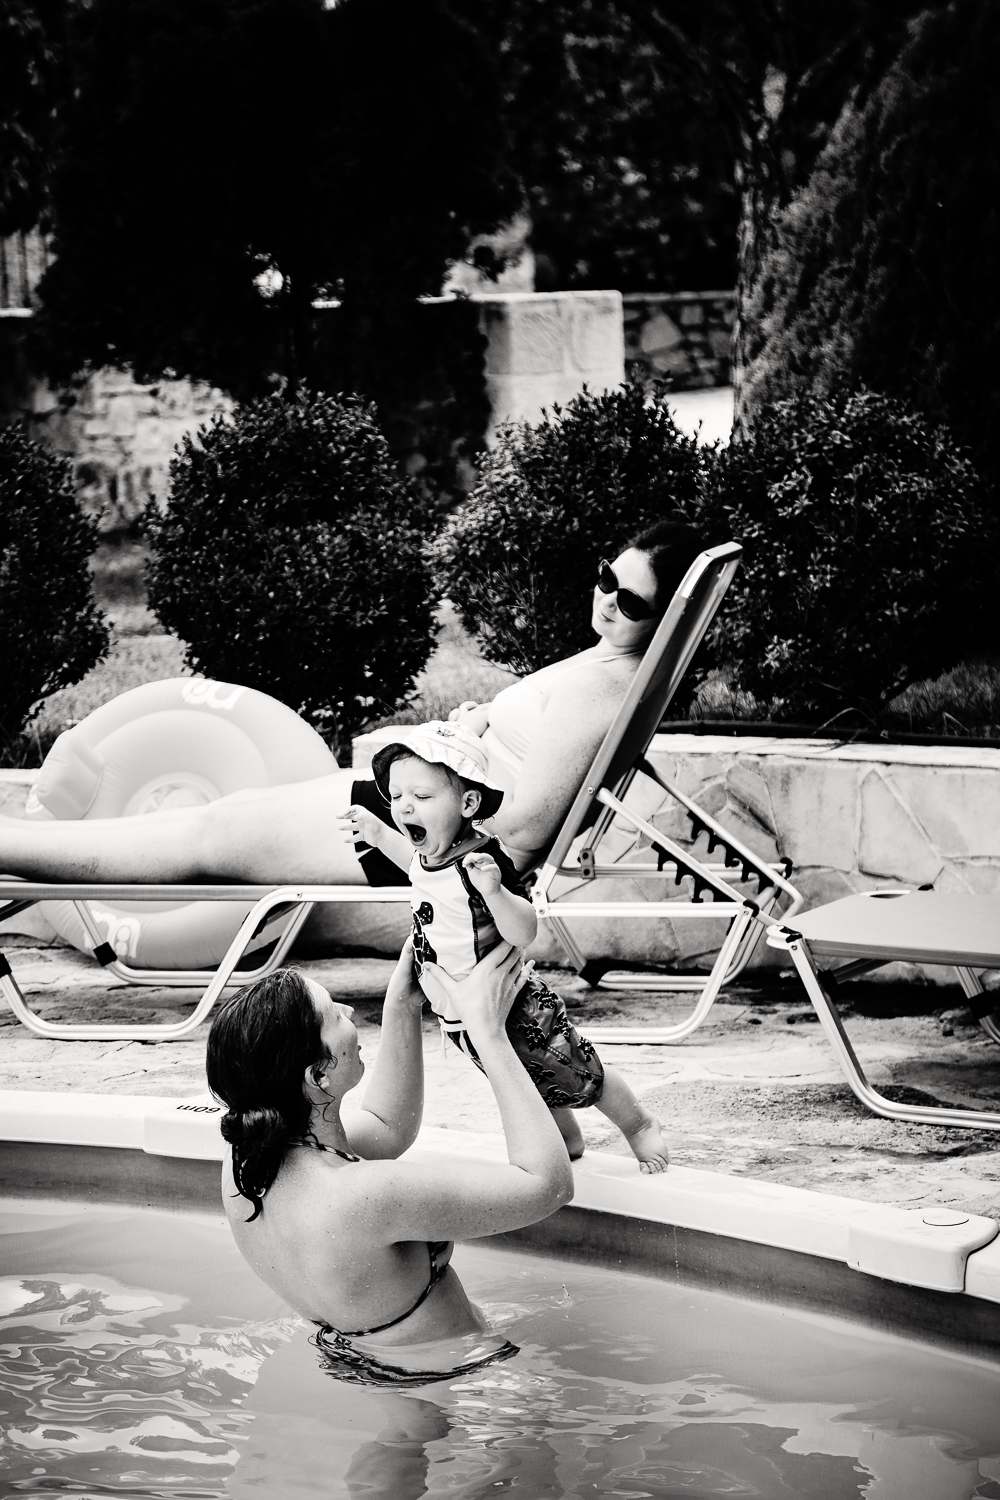 adventure-travel-photography-becky-brockie-greece-sister-son-pool.jpg